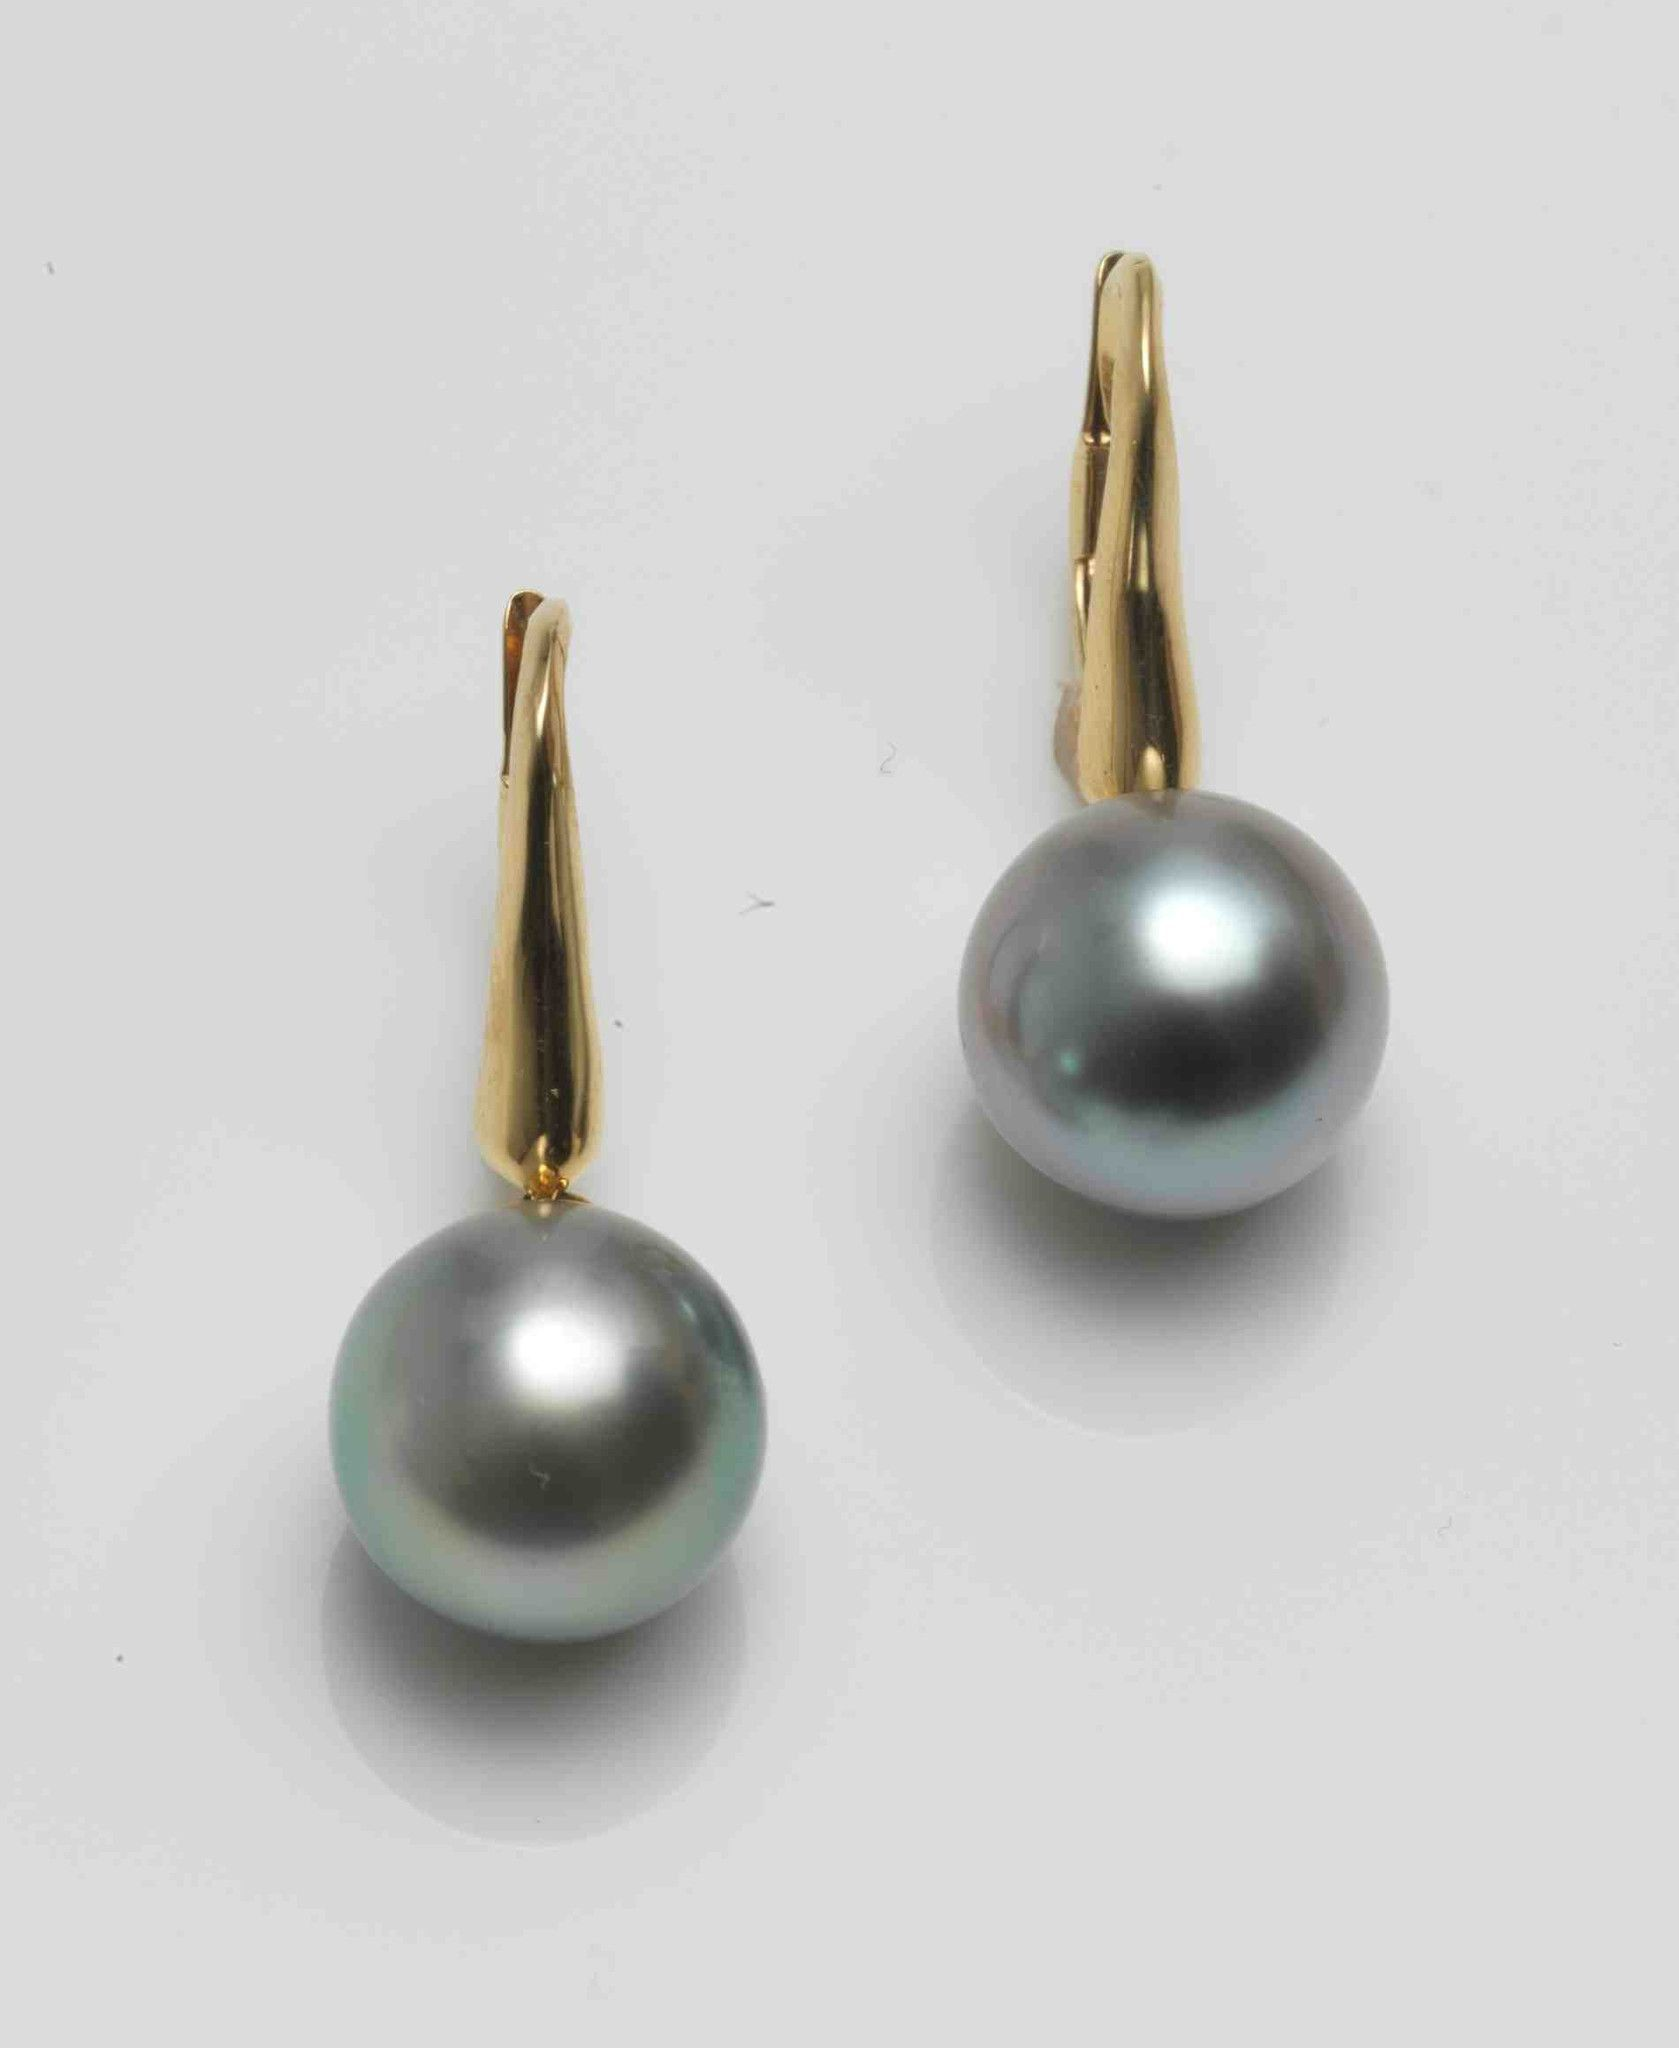 Earring Pearl Collection Natural Color Tahitian Cultured Pearls Drops From 18k Gold Measure 12 3 X 11 Designer Ael